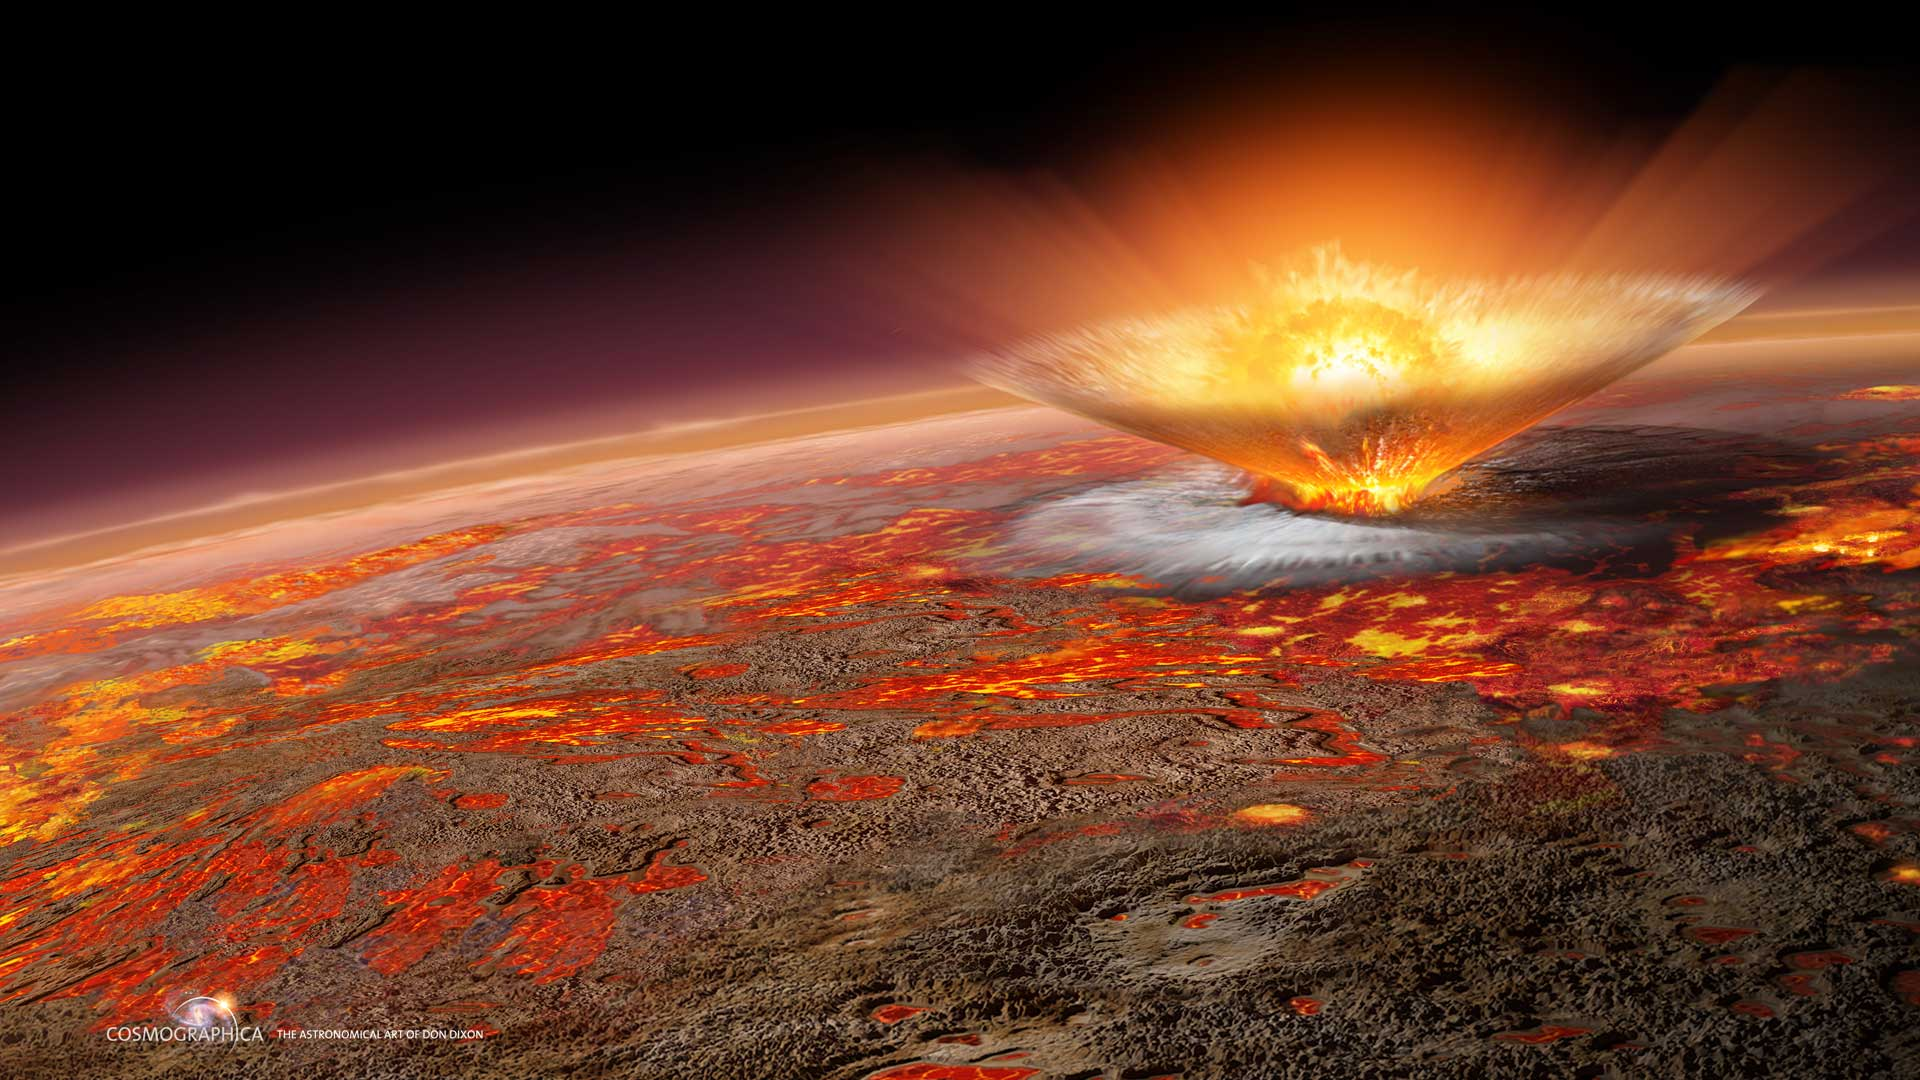 Scientists reveal new vision of Earth 4 billion years ago